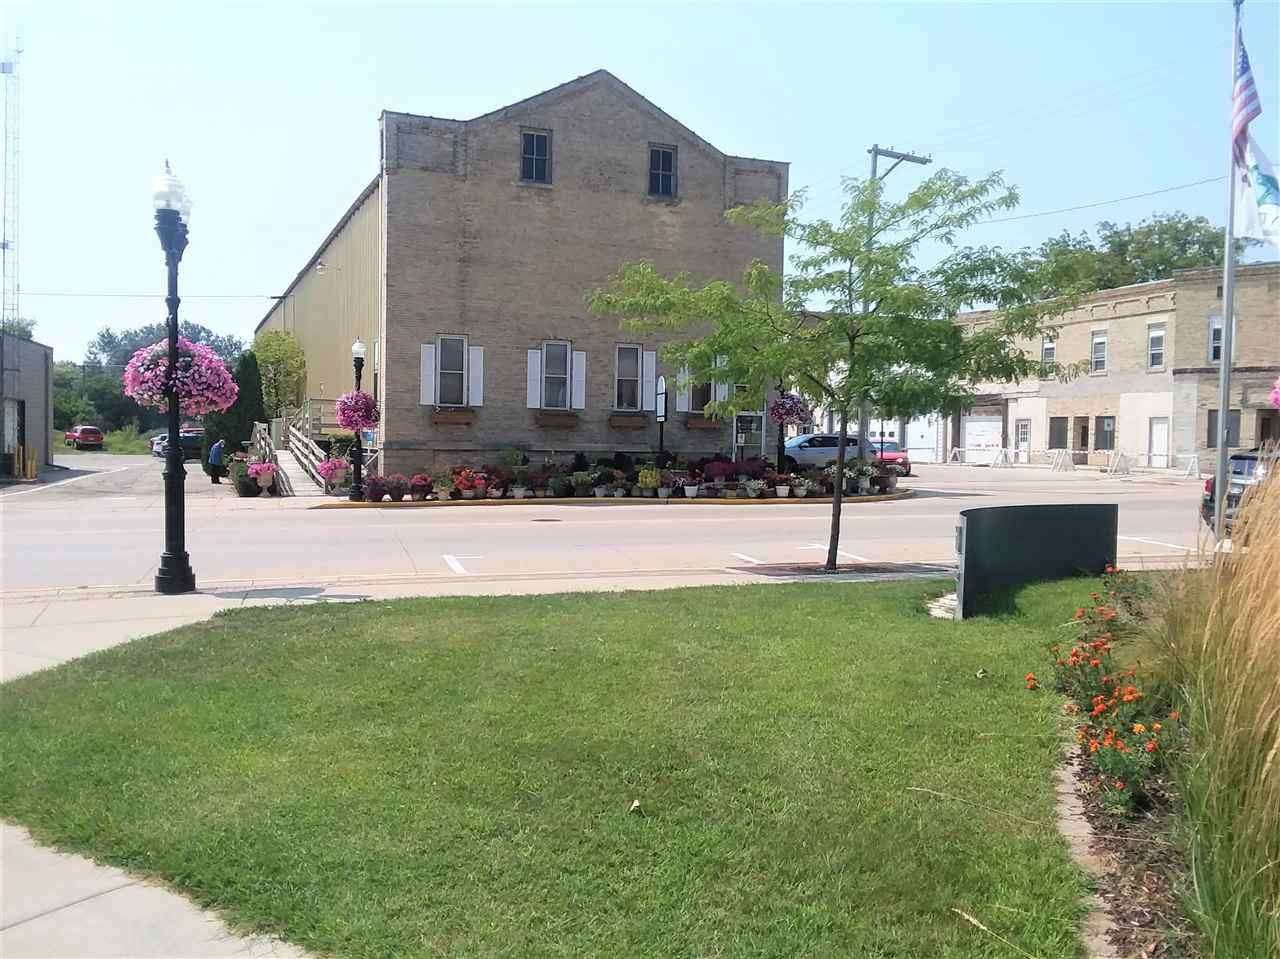 f_1892584_02 Commercial Properties for in Sale Edgerton, WI